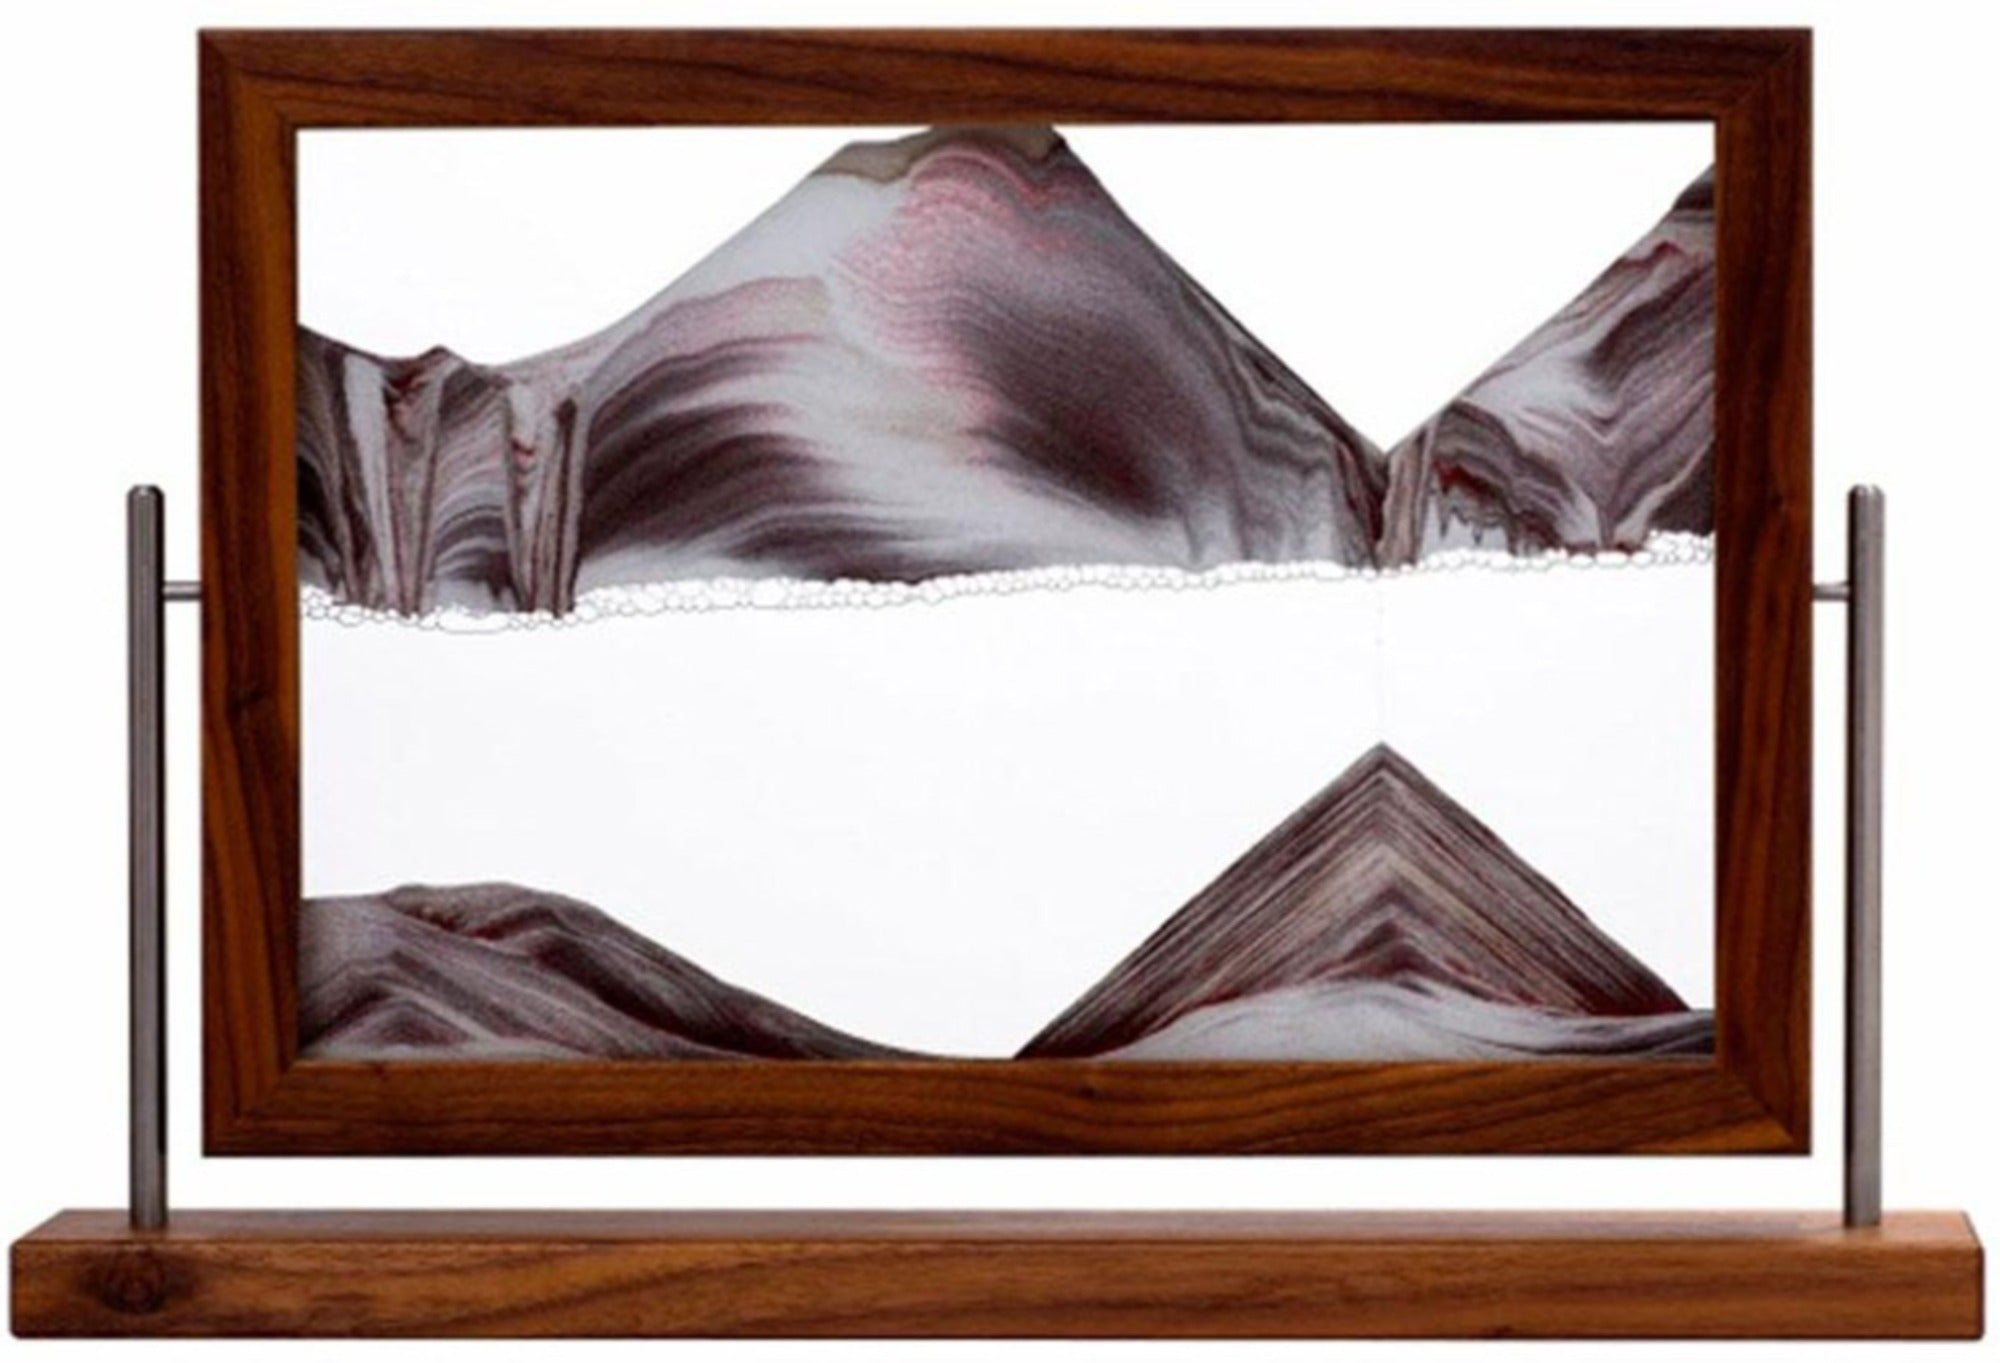 Picture of KB Collection Masterpiece Series Ballerina Walnut Sand Art- By Klaus Bosch sold by MovingSandArt.com